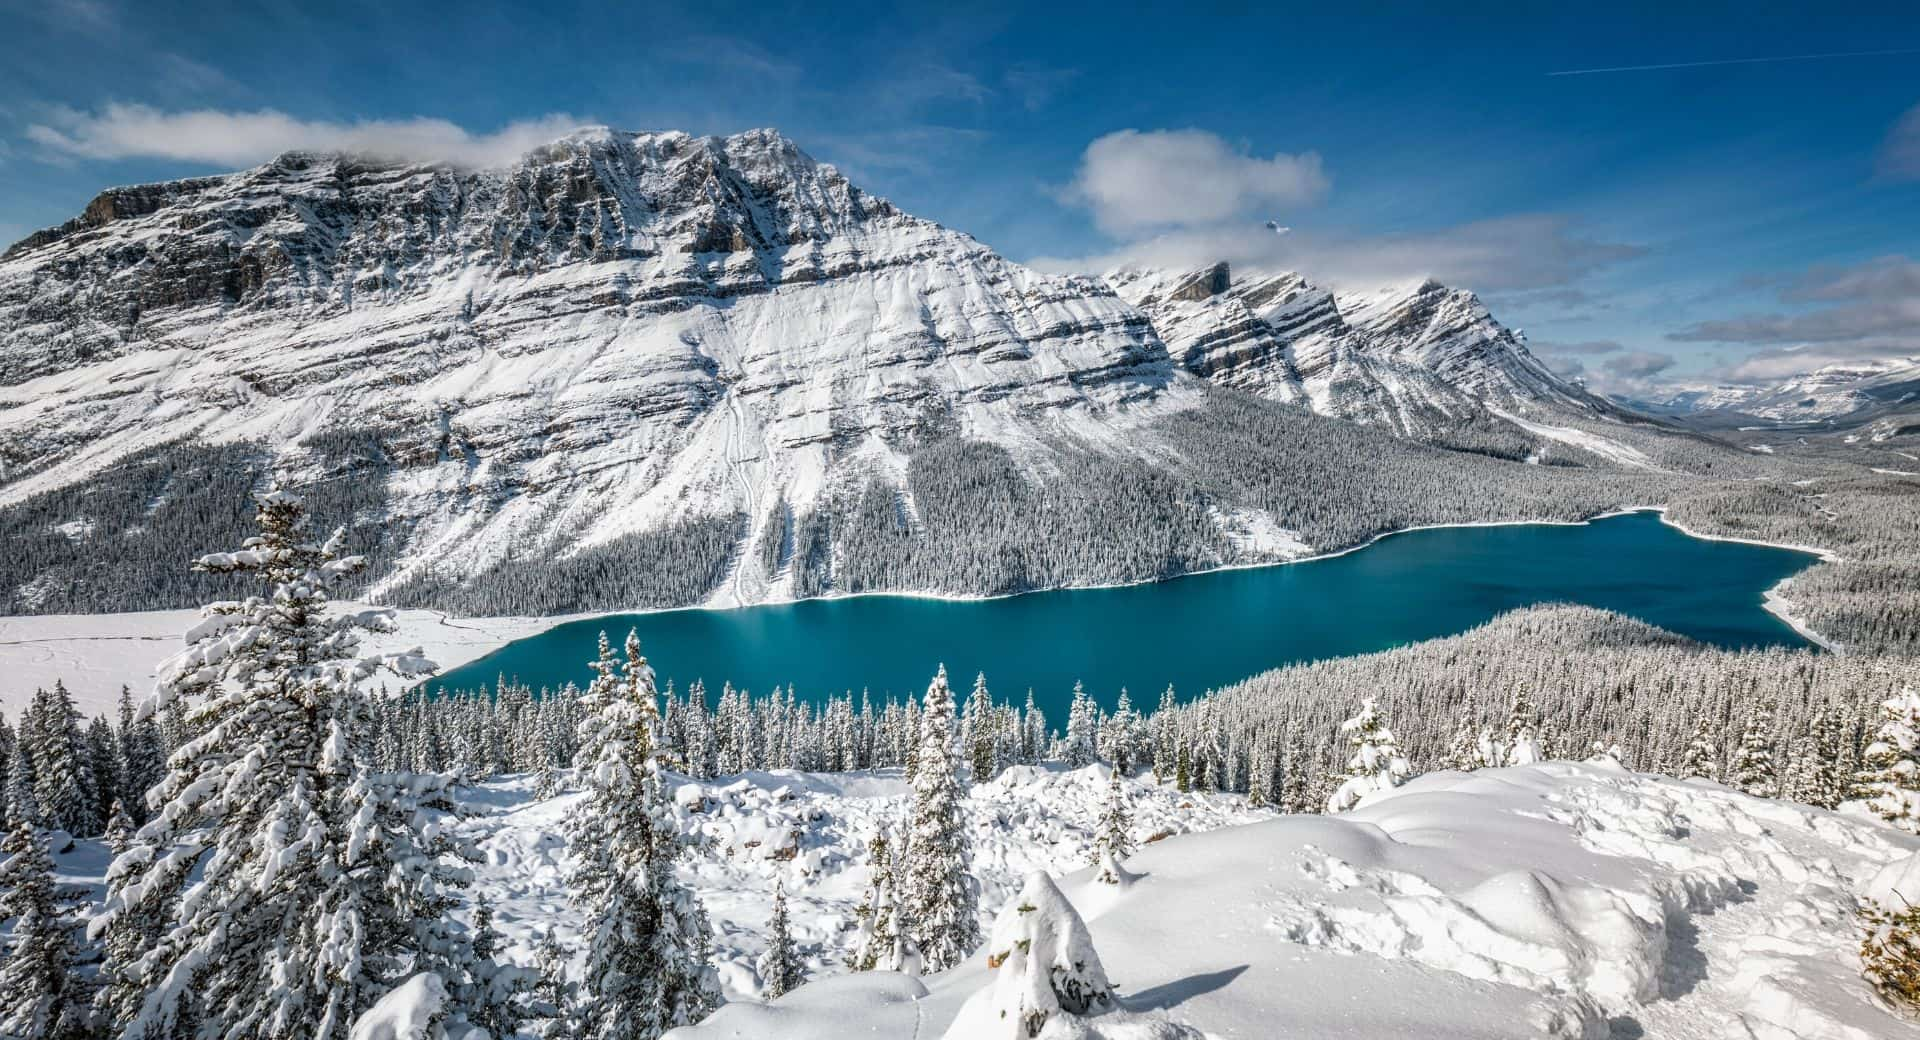 A Complete Guide to Visiting Canada's Banff National Park